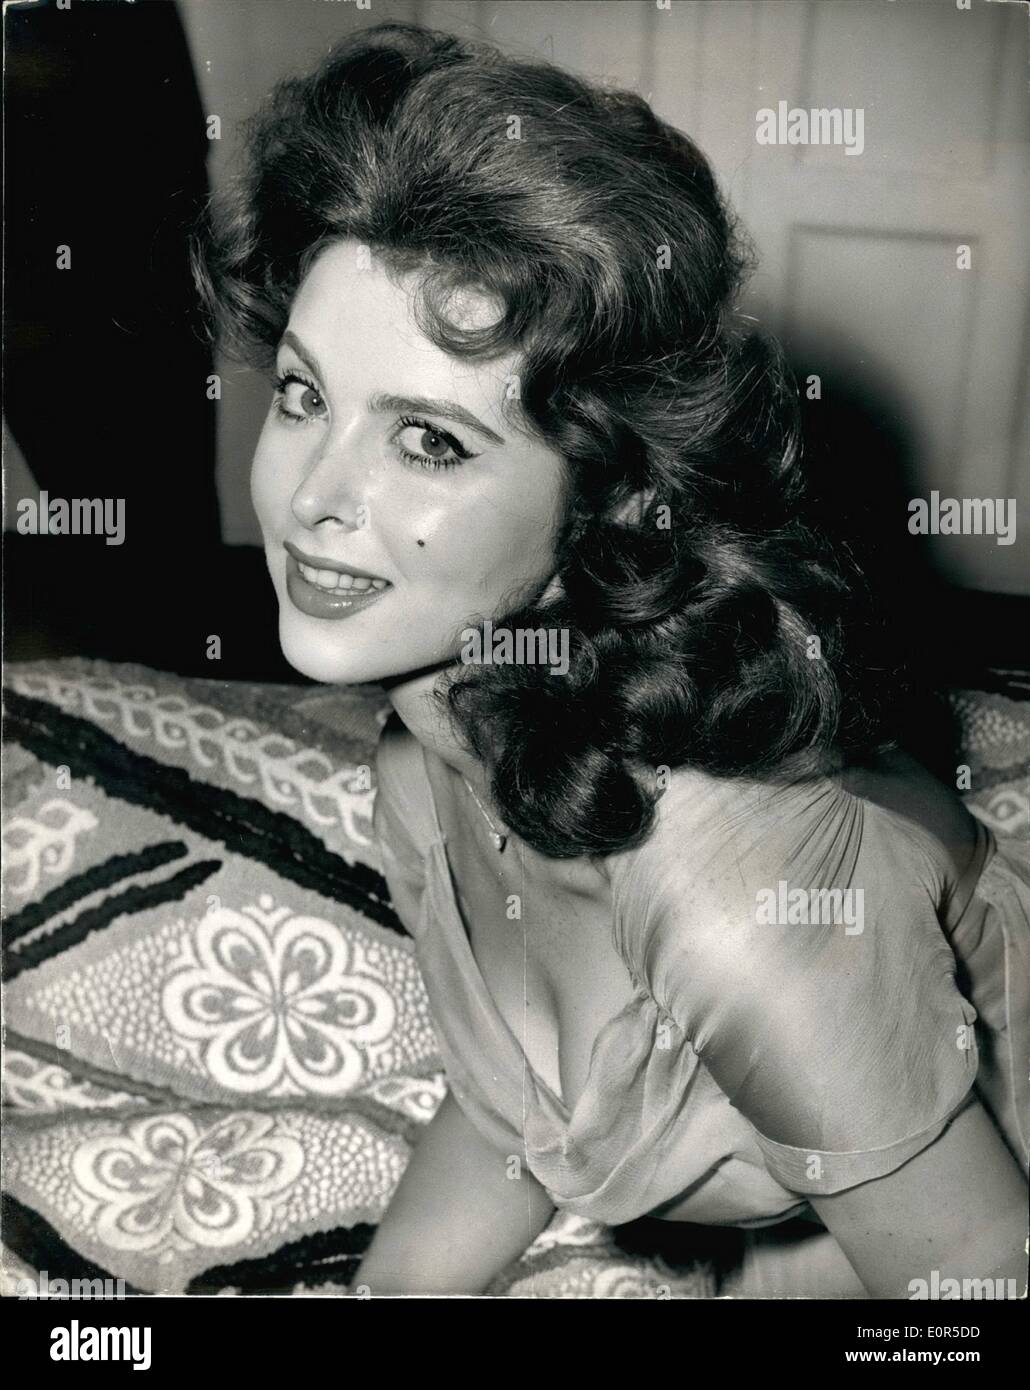 Mar. 03, 1958 - ''God''s little crew star in London. Tina Louise at the savoy. Miss Tina Louise - the American screen star who has been called ''The Most beautiful redhead in the world'' was to be seen at the savoy hotel this morning. She is here for the premiers of her first film ''God''s Little Acre.''. photo shows Tina Louise during a press conference at the Savoy this morning. - Stock Image